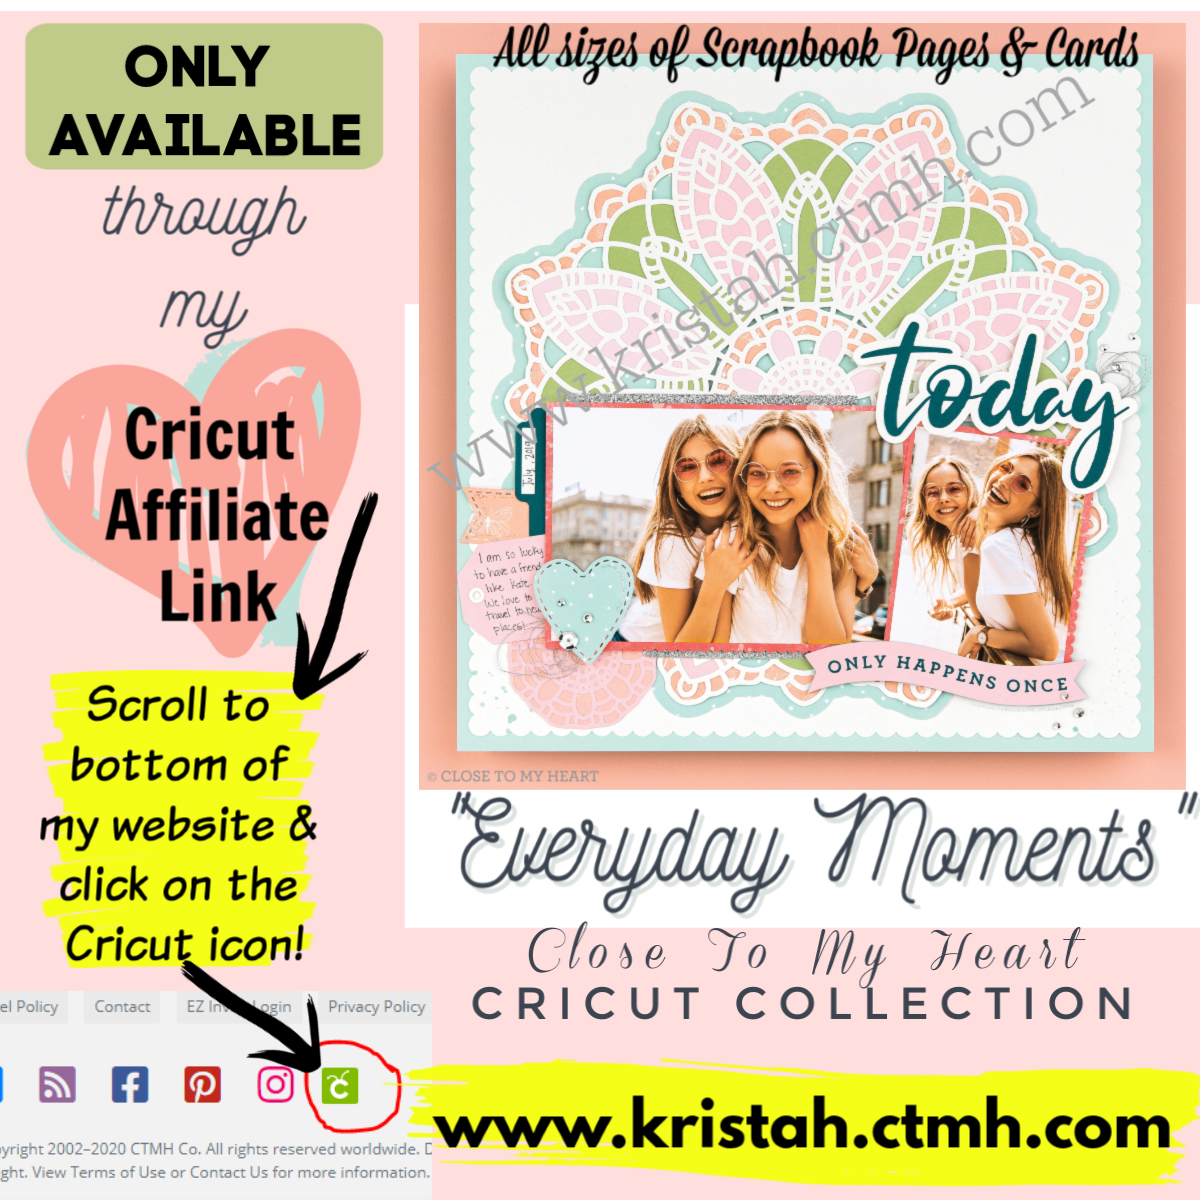 March 1st CTMH released our NEWEST Cricut Collection!